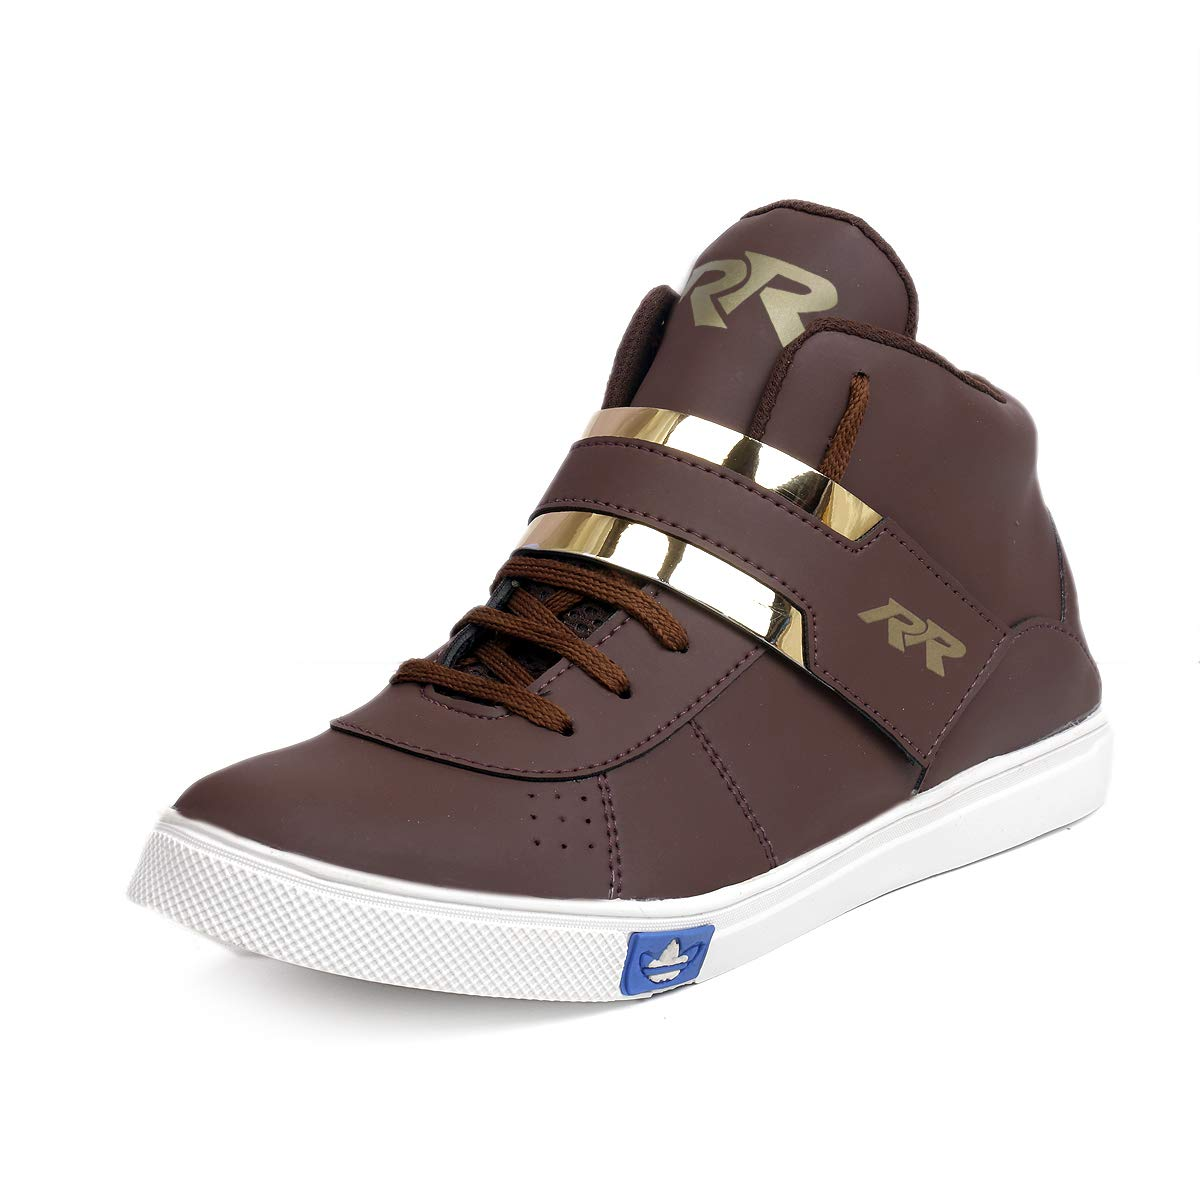 06314d5e3a167 Red Rose Men's Synthetic Leather Boots & Casual Shoes and Sneakers  Gold-G-Red, Black & White Shoes